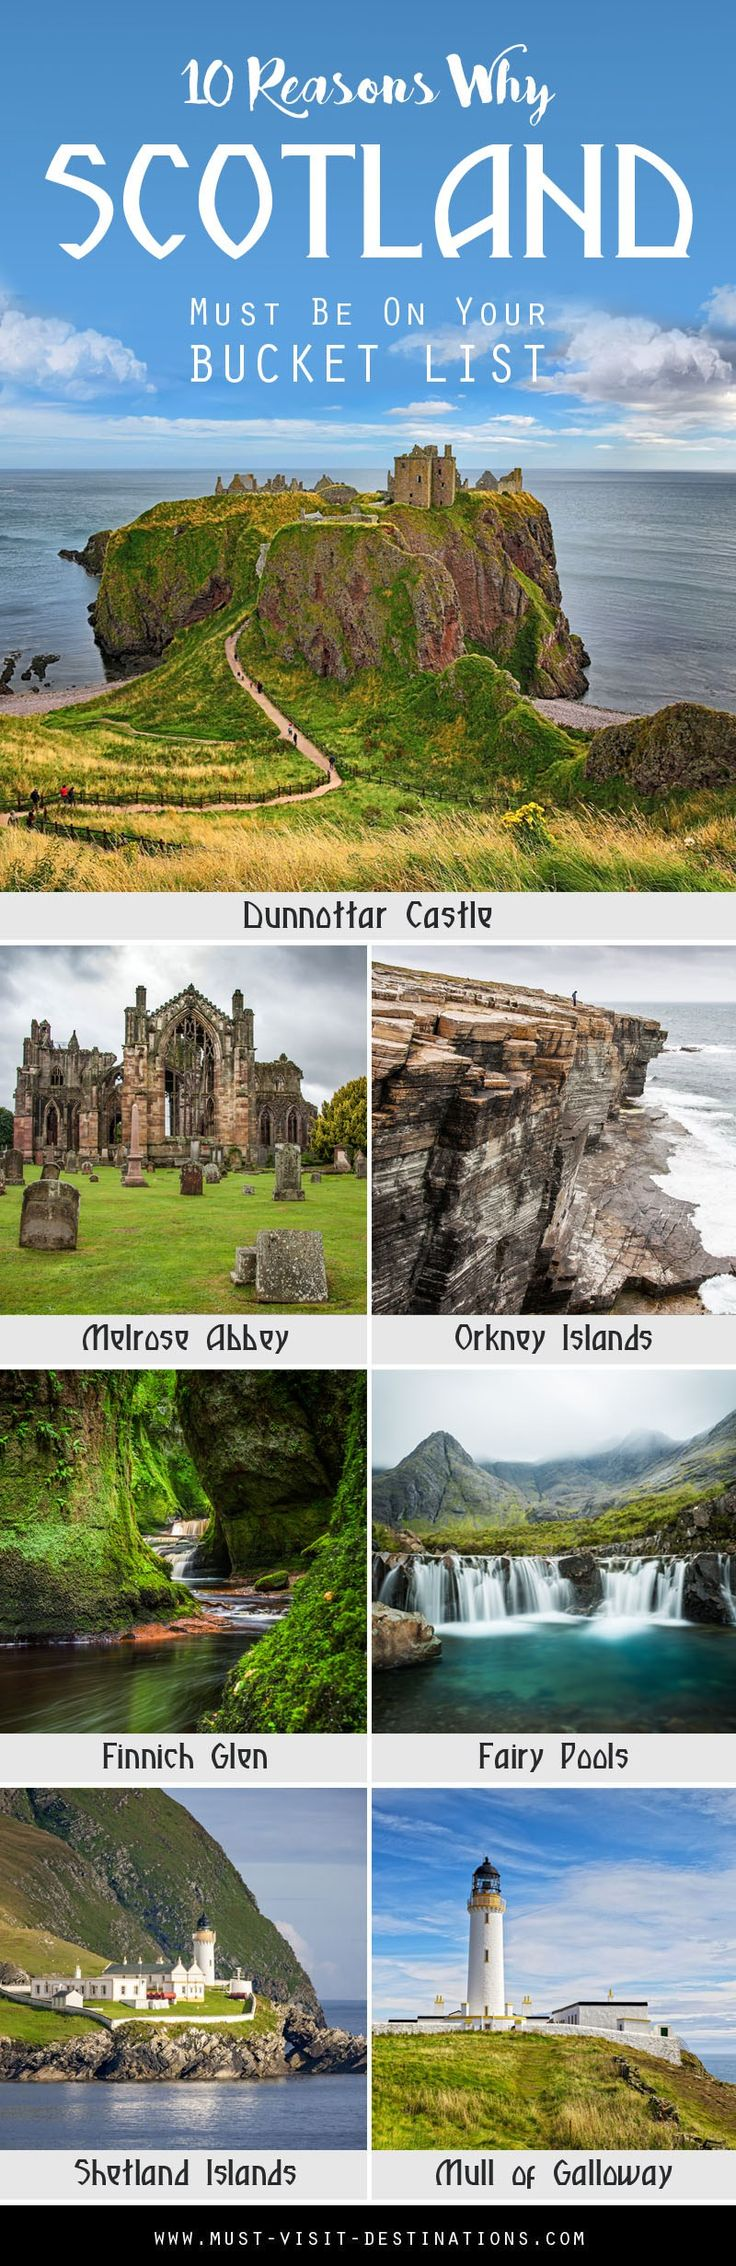 Are you wondering which travel destination you should visit this year? Here are 10 Reasons Why Scotland Must Be On Your Bucket List.#Scotland #Travel #Europe http://www.jetradar.fr/flights/Dominican-Republic-DO/?marker=126022.viedereve